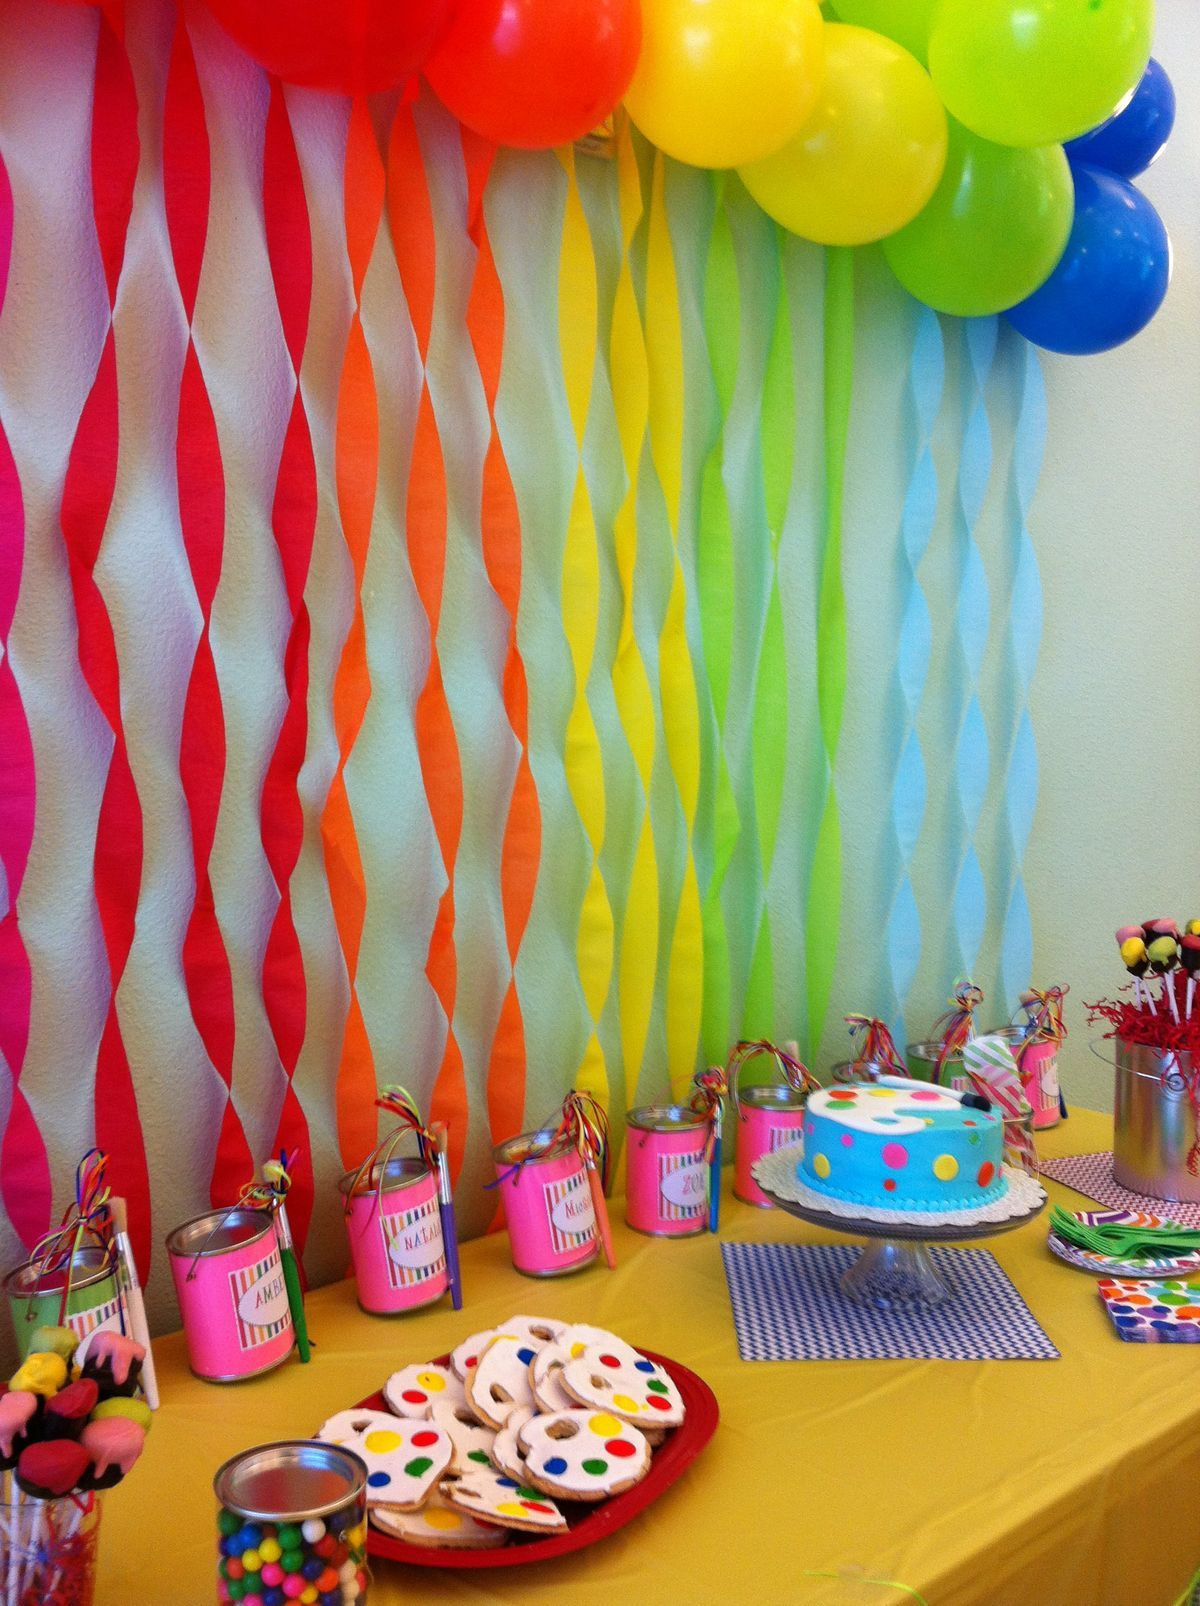 Best ideas about Birthday Girl Decorations . Save or Pin So Perf Birthday Party for an 8 year old girl Rocker Now.